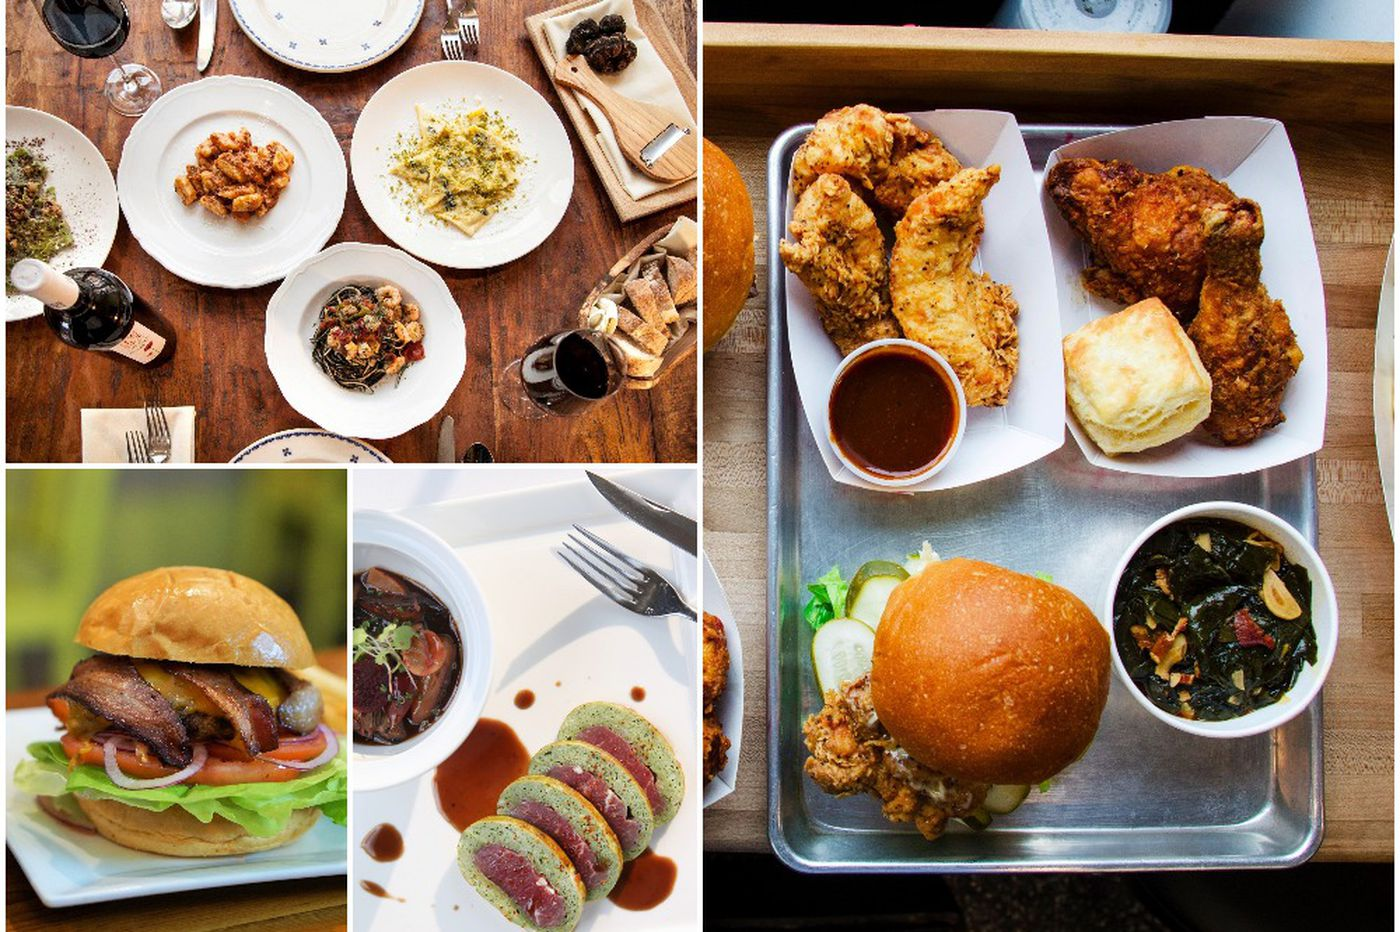 East Passyunk Restaurant Week starts Feb. 24. Here's what the chefs would order.